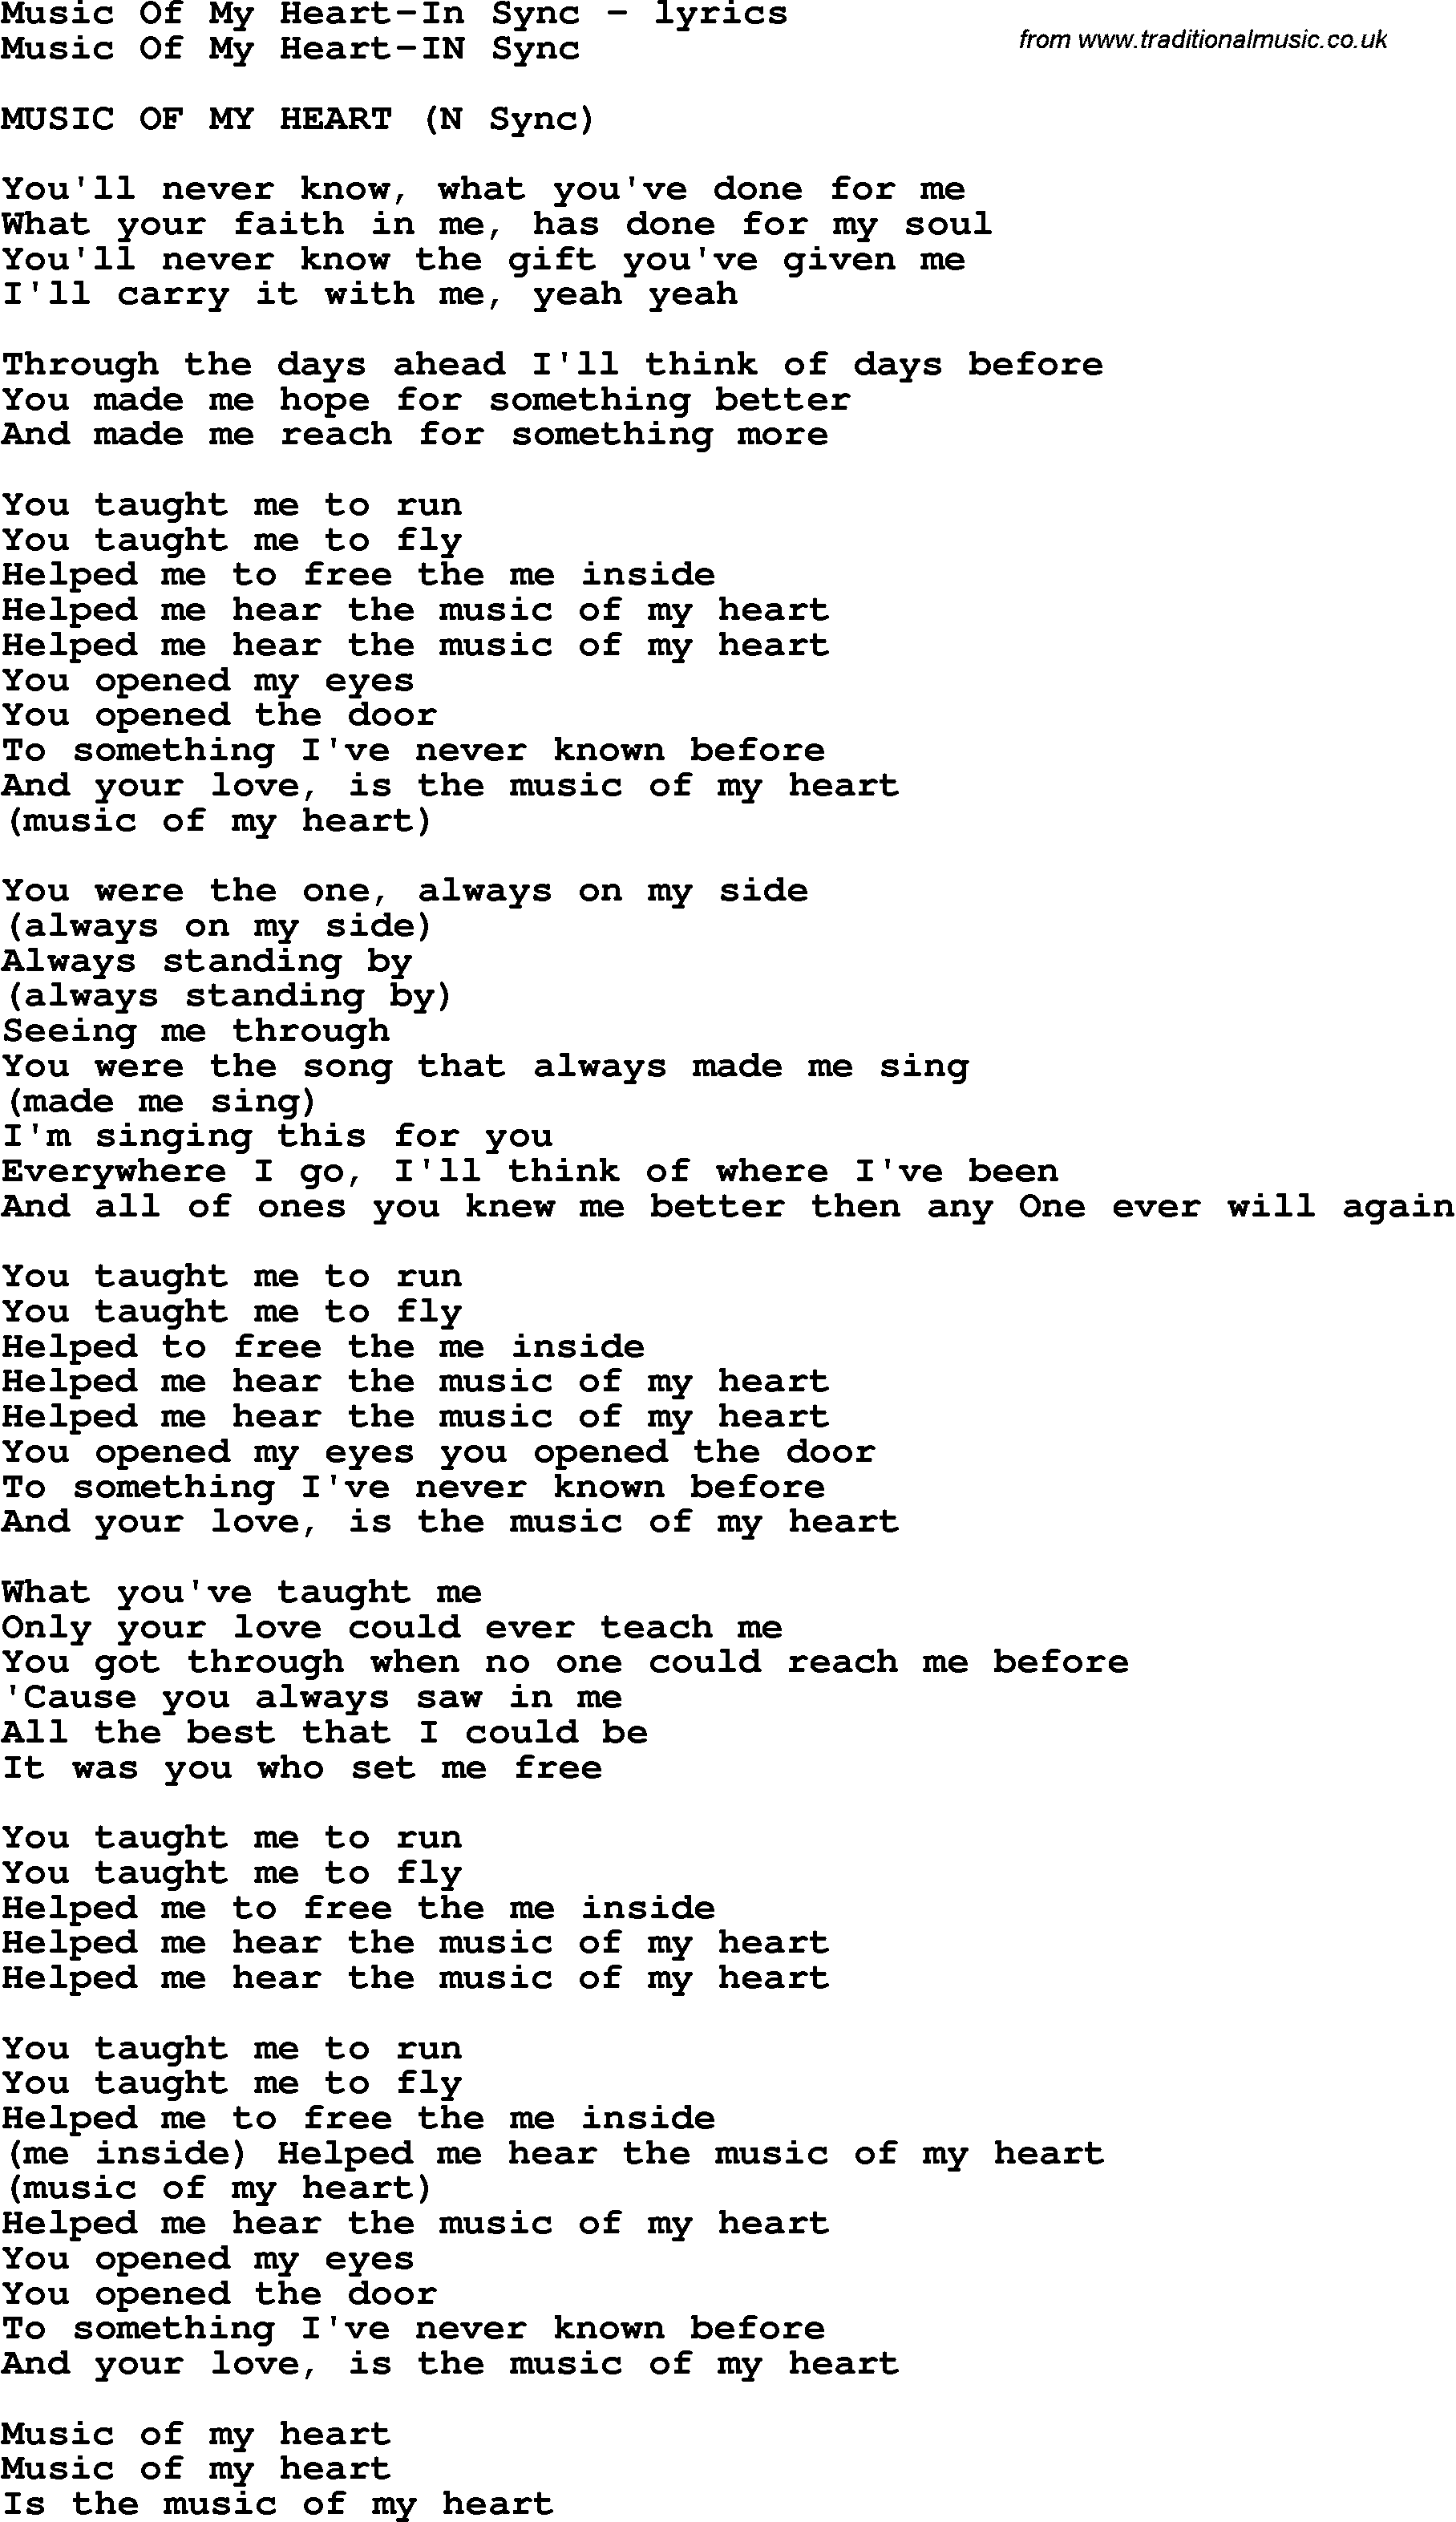 Love Song Lyrics for Music Of My Heart-In Sync  sc 1 st  Traditional Music Library & Love Song Lyrics for:Music Of My Heart-In Sync